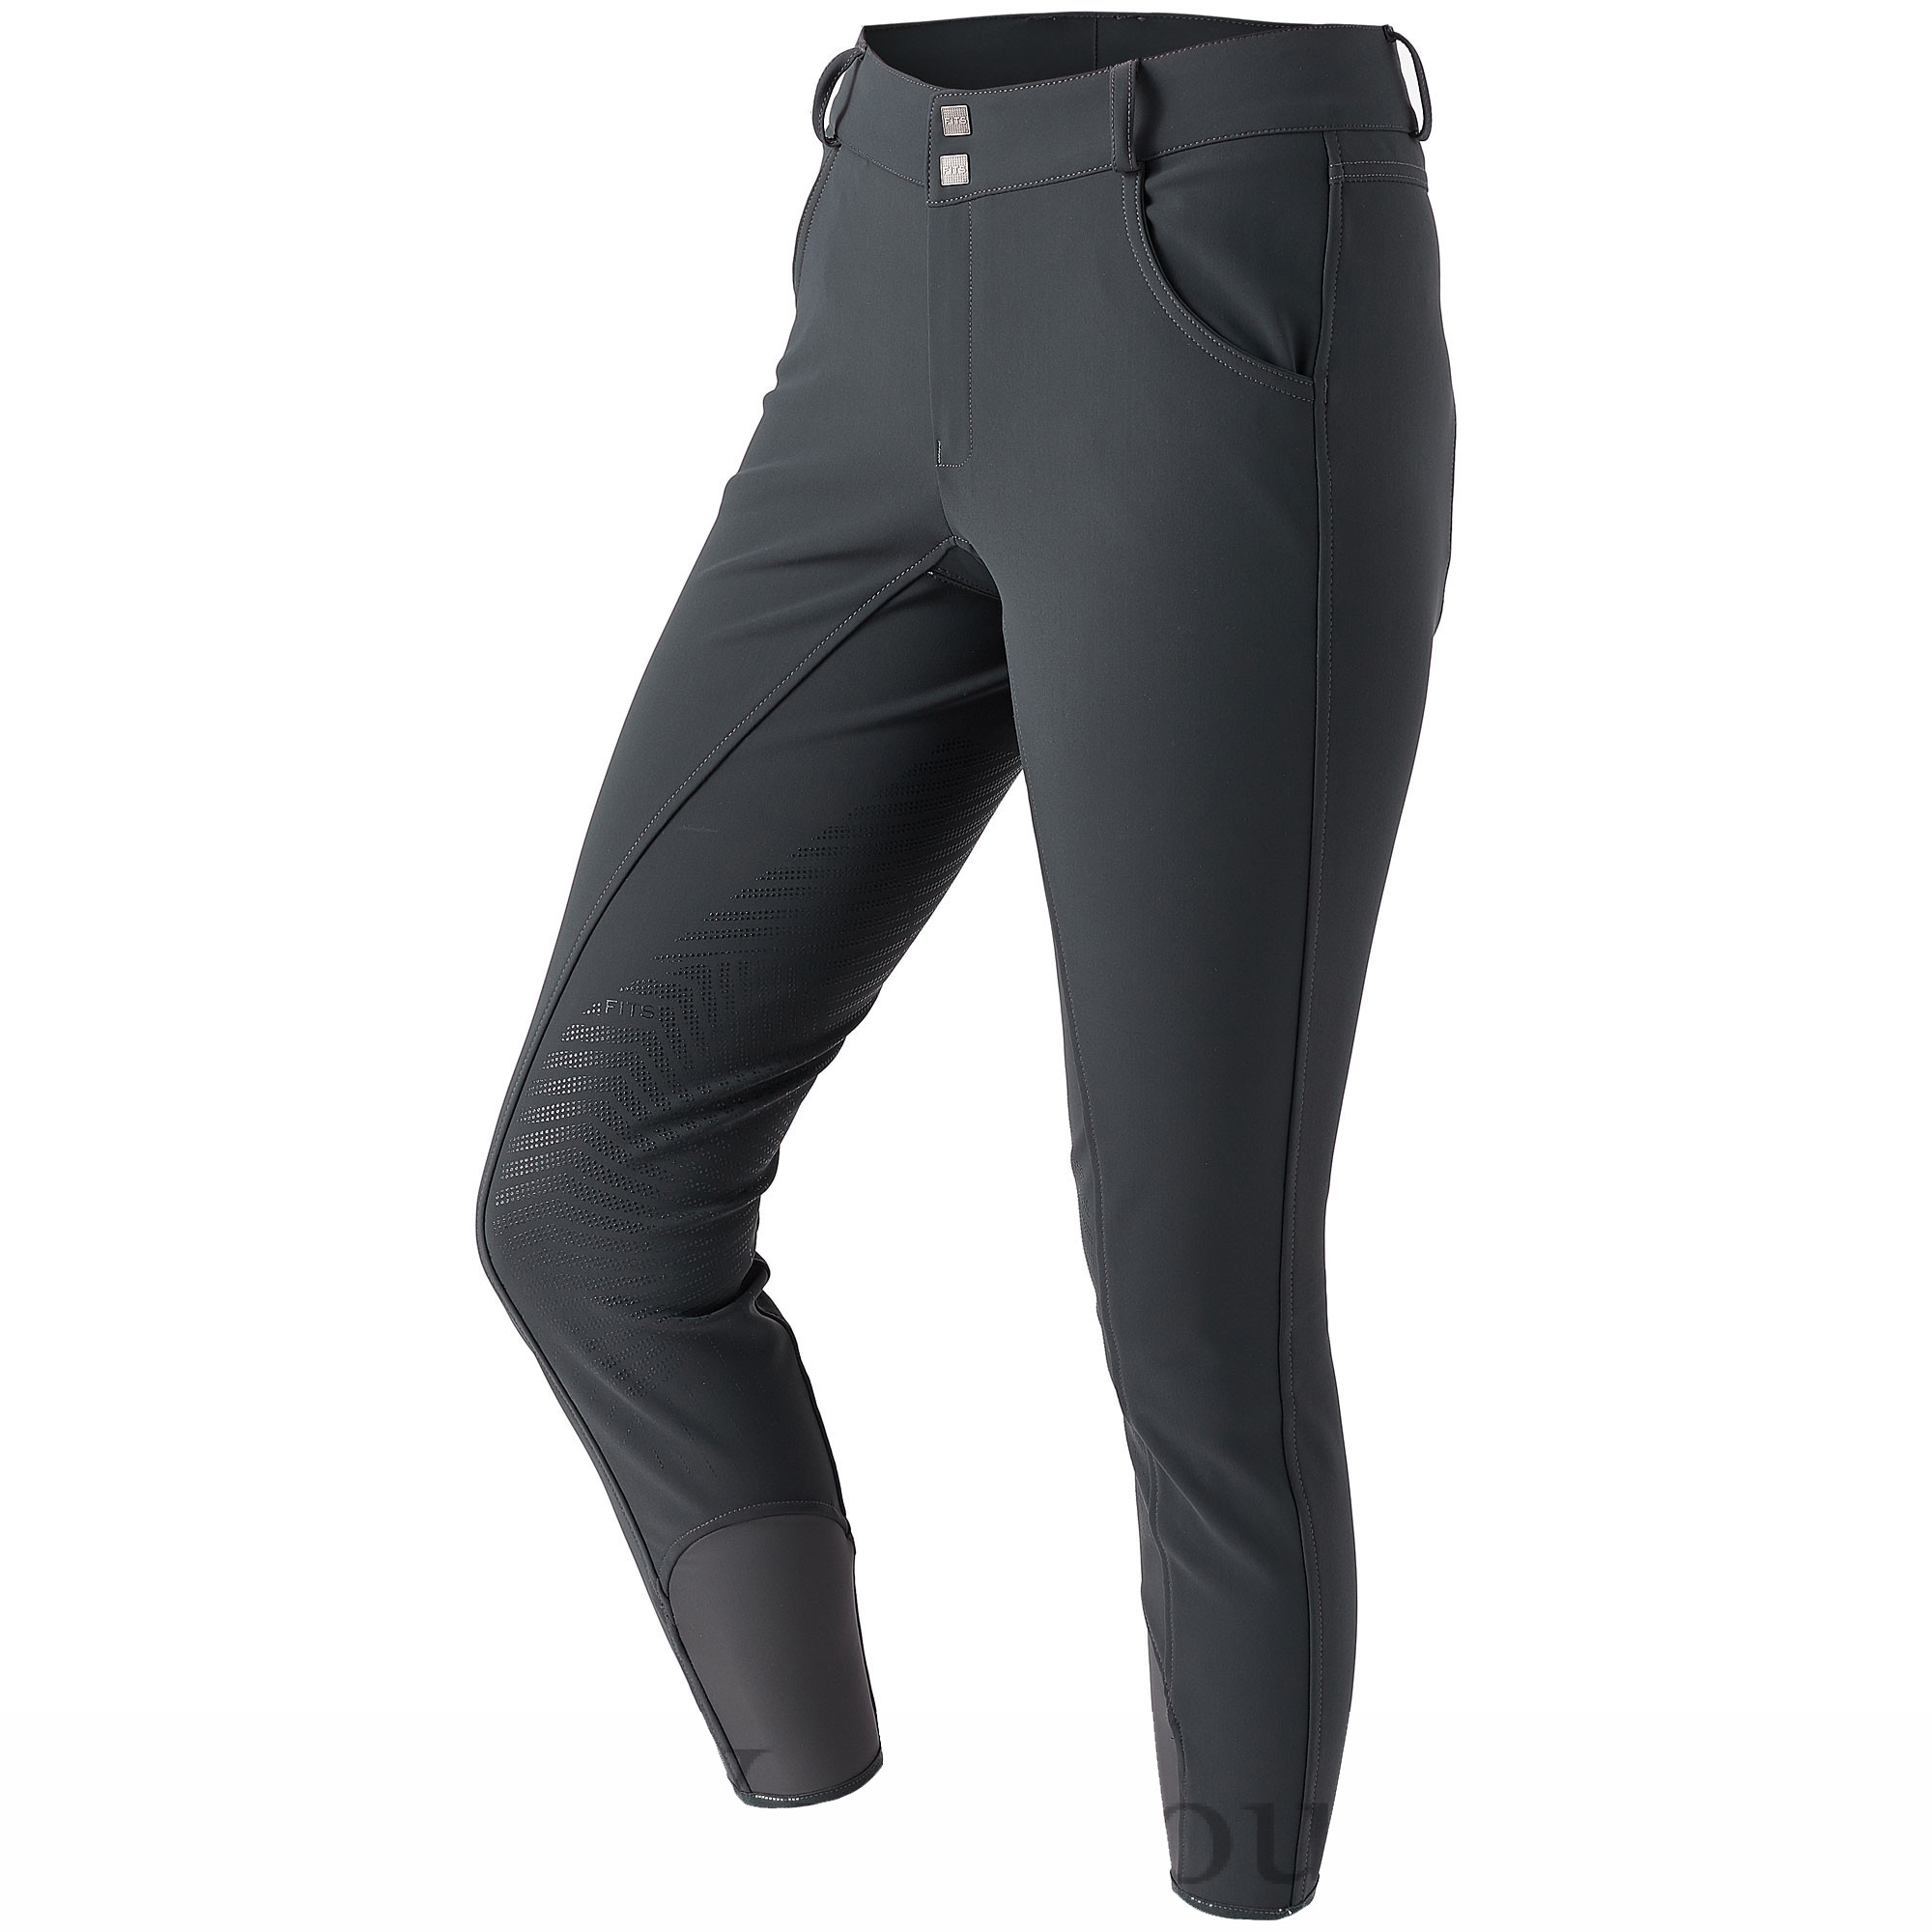 Fits Women's Olivia Full Seat Tread Breech